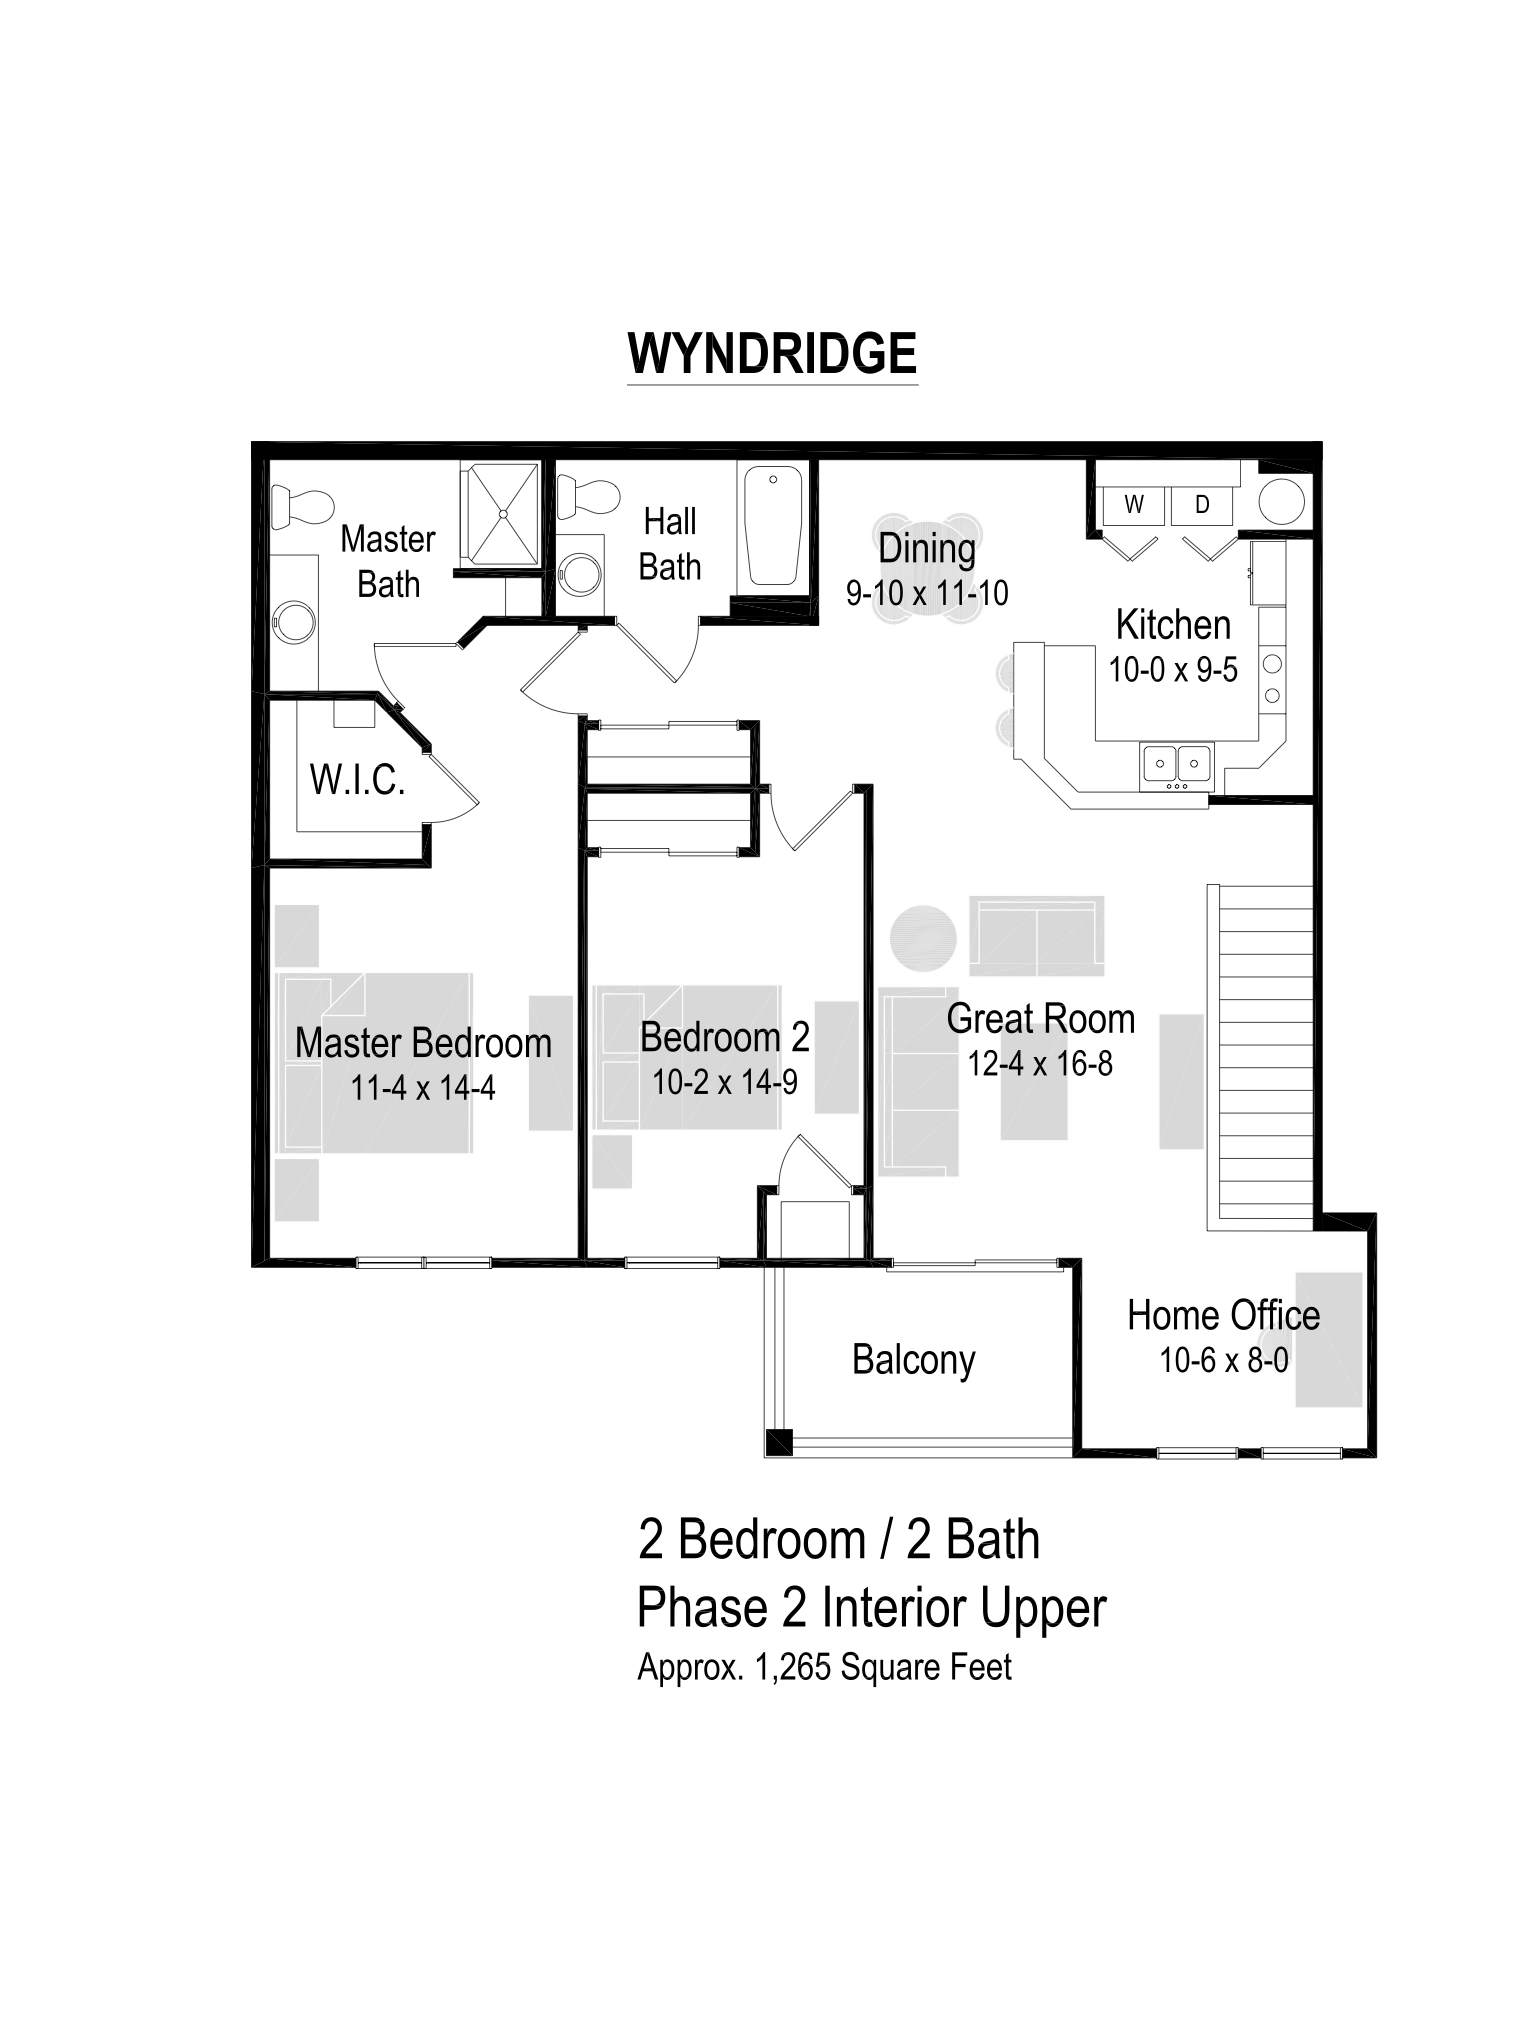 1265 Sq. Ft. Floor Plan